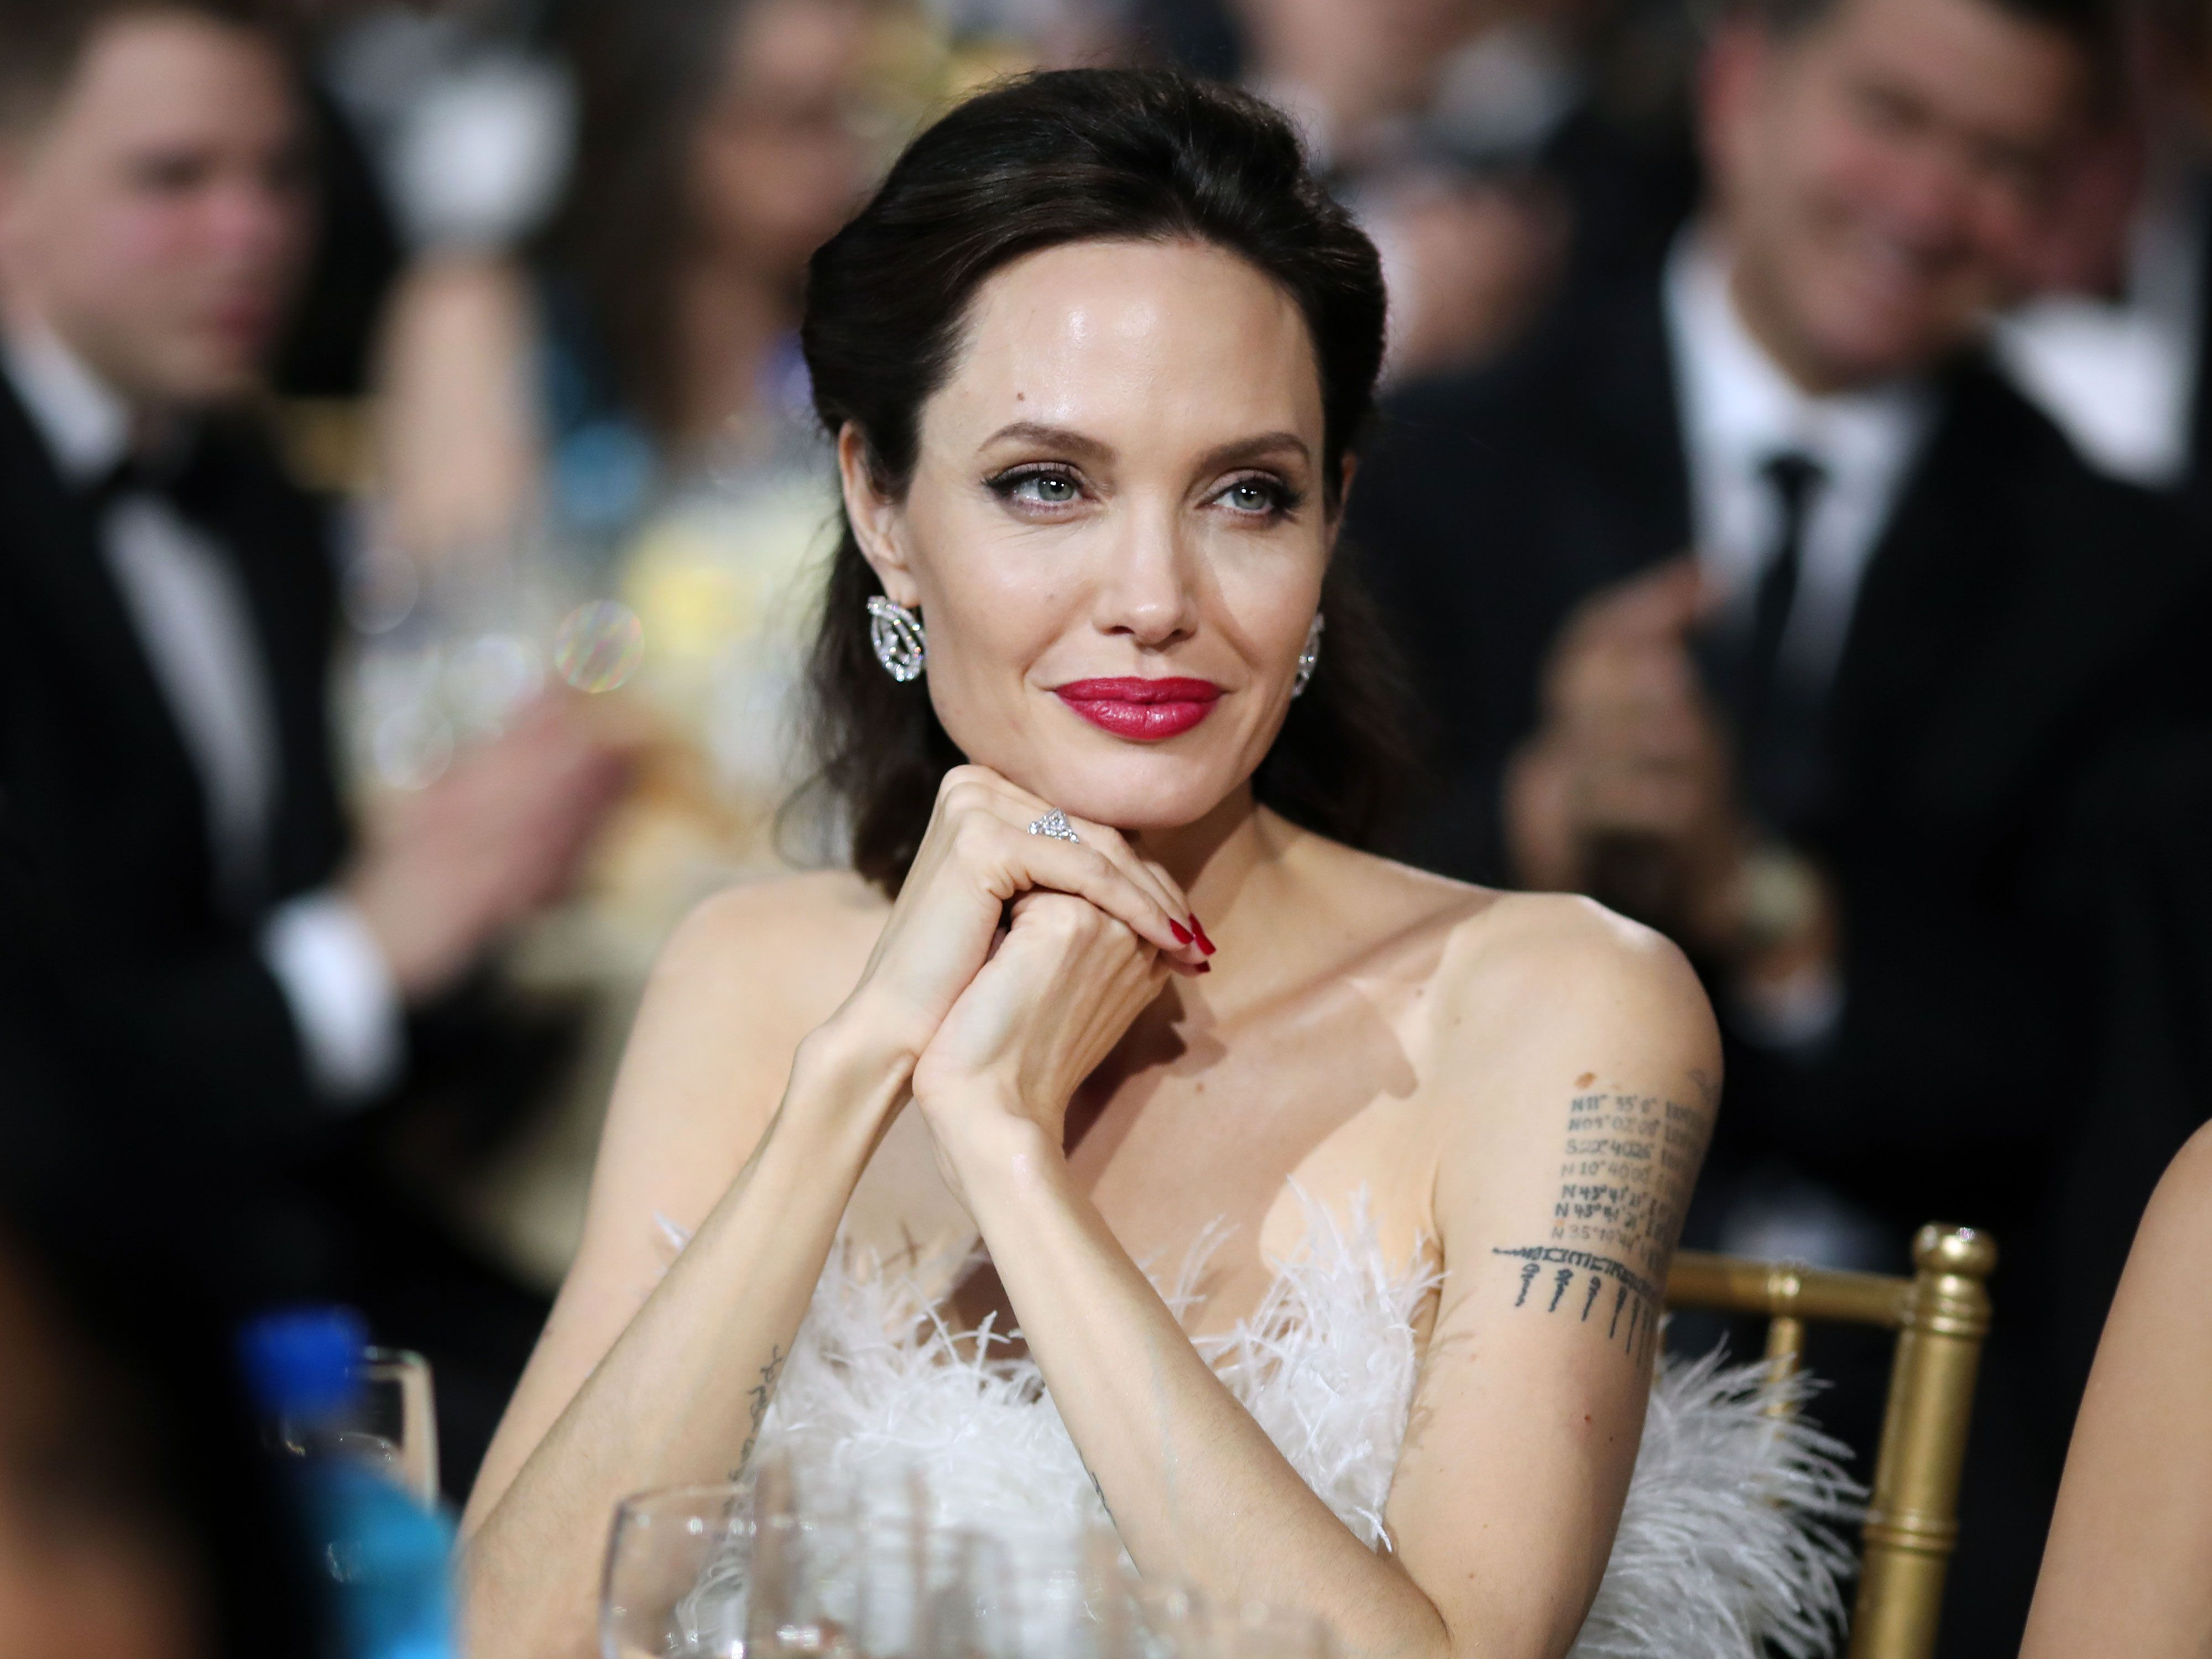 Angelina Jolie Officially Drops 'Pitt' From Her Name